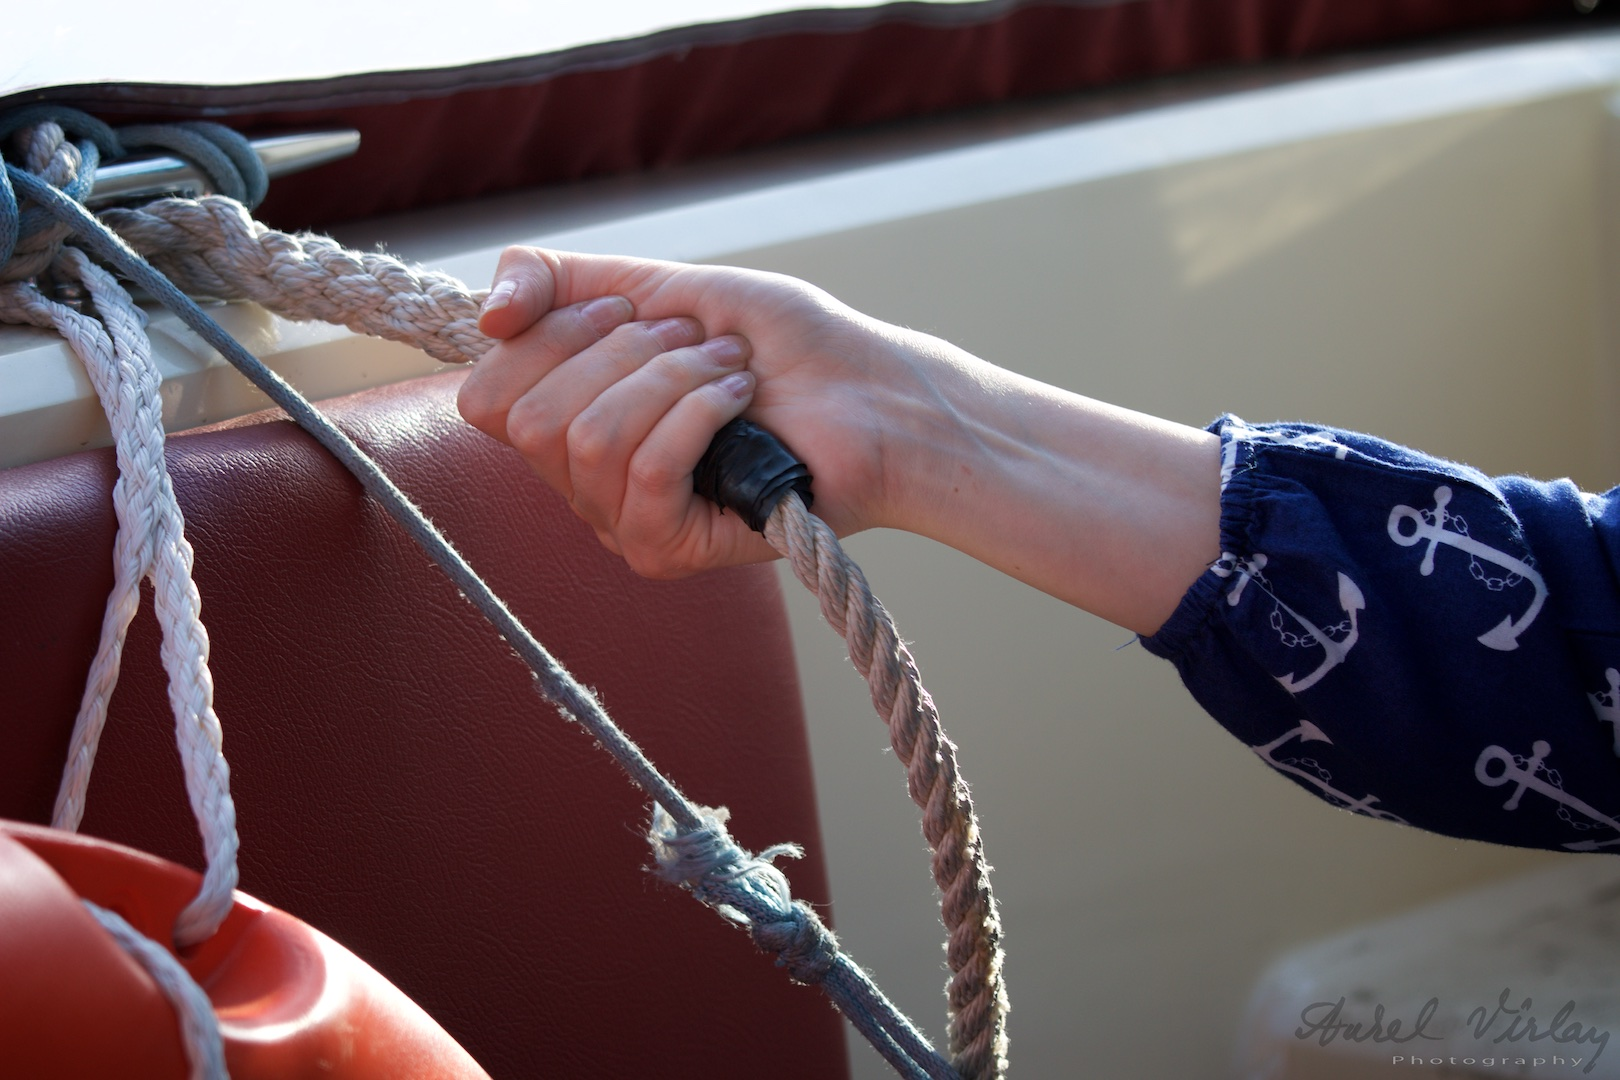 A delicate hand on the boat's rope. Details found photography